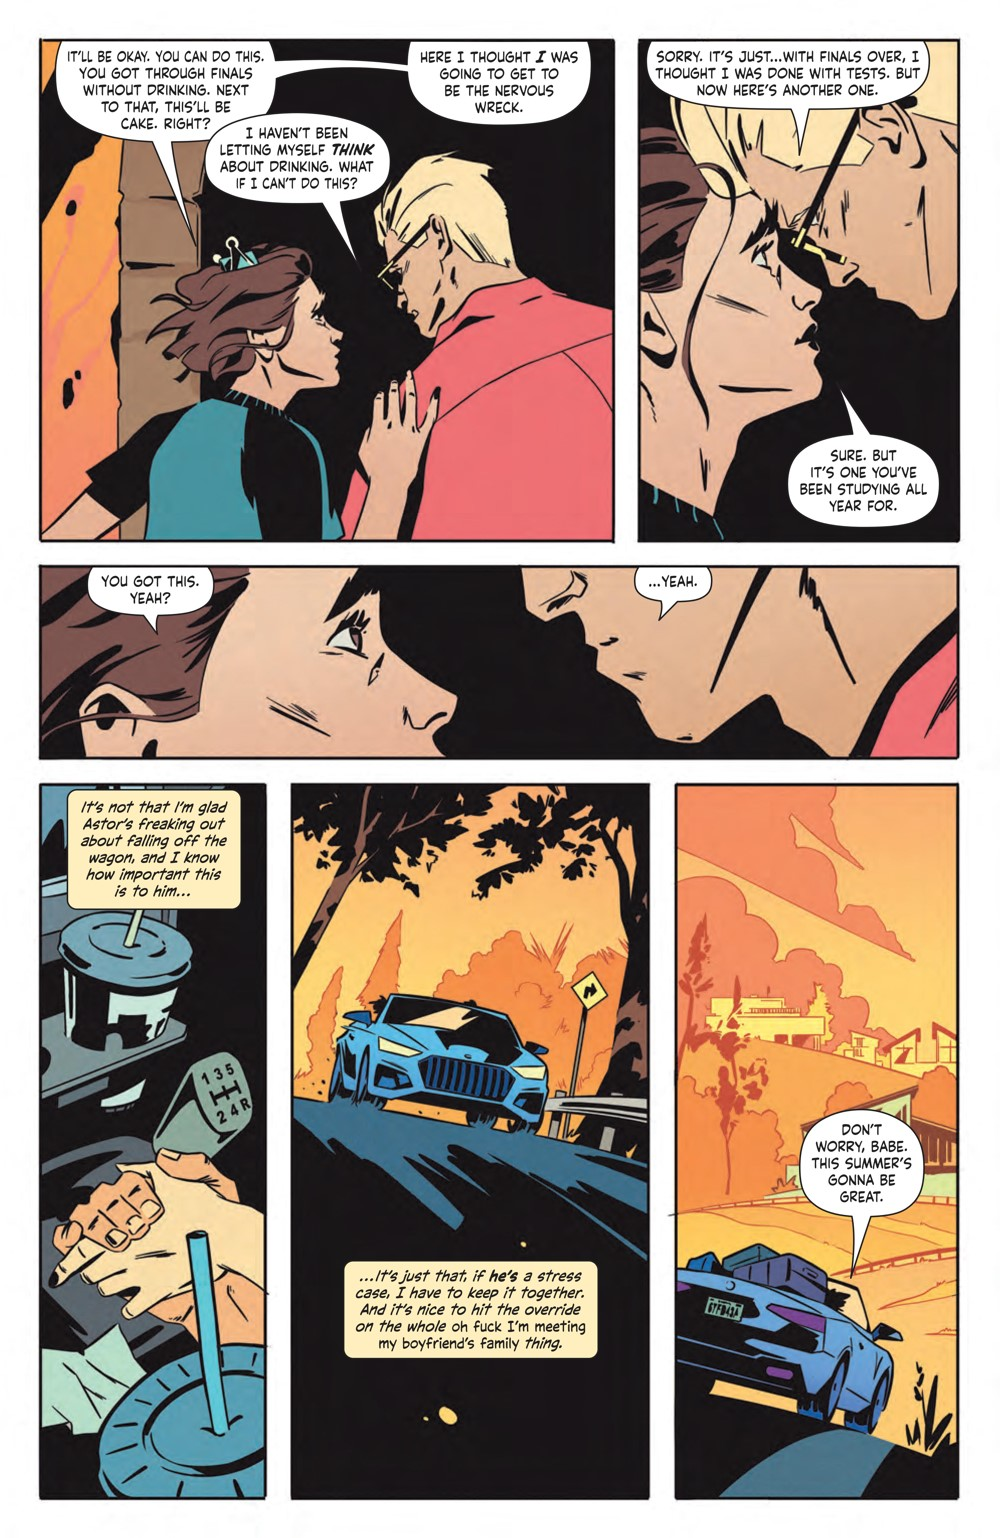 EatTheRich_001_PRESS_5 ComicList Previews: EAT THE RICH #1 (OF 5)